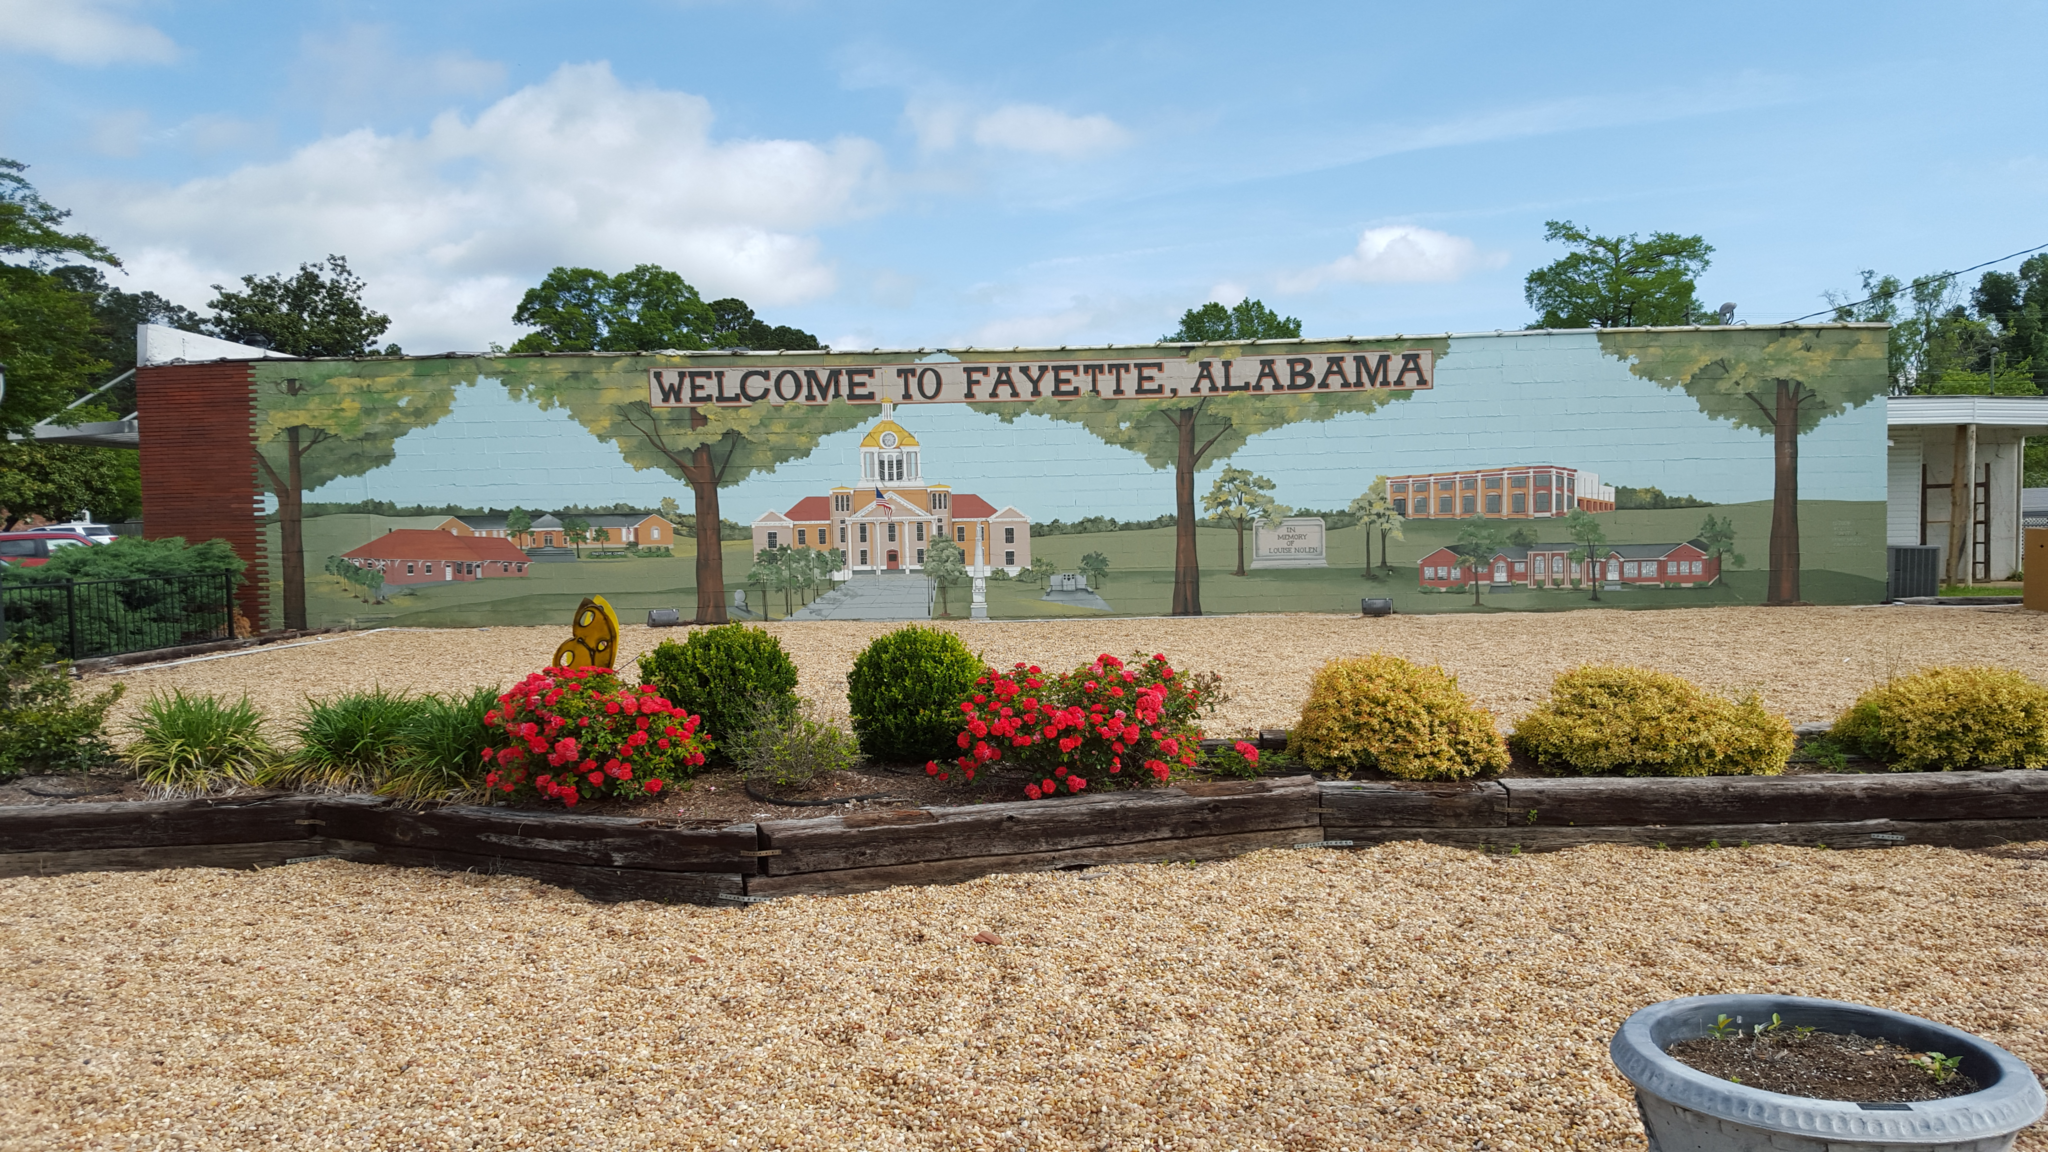 Welcome to Fayette Mural